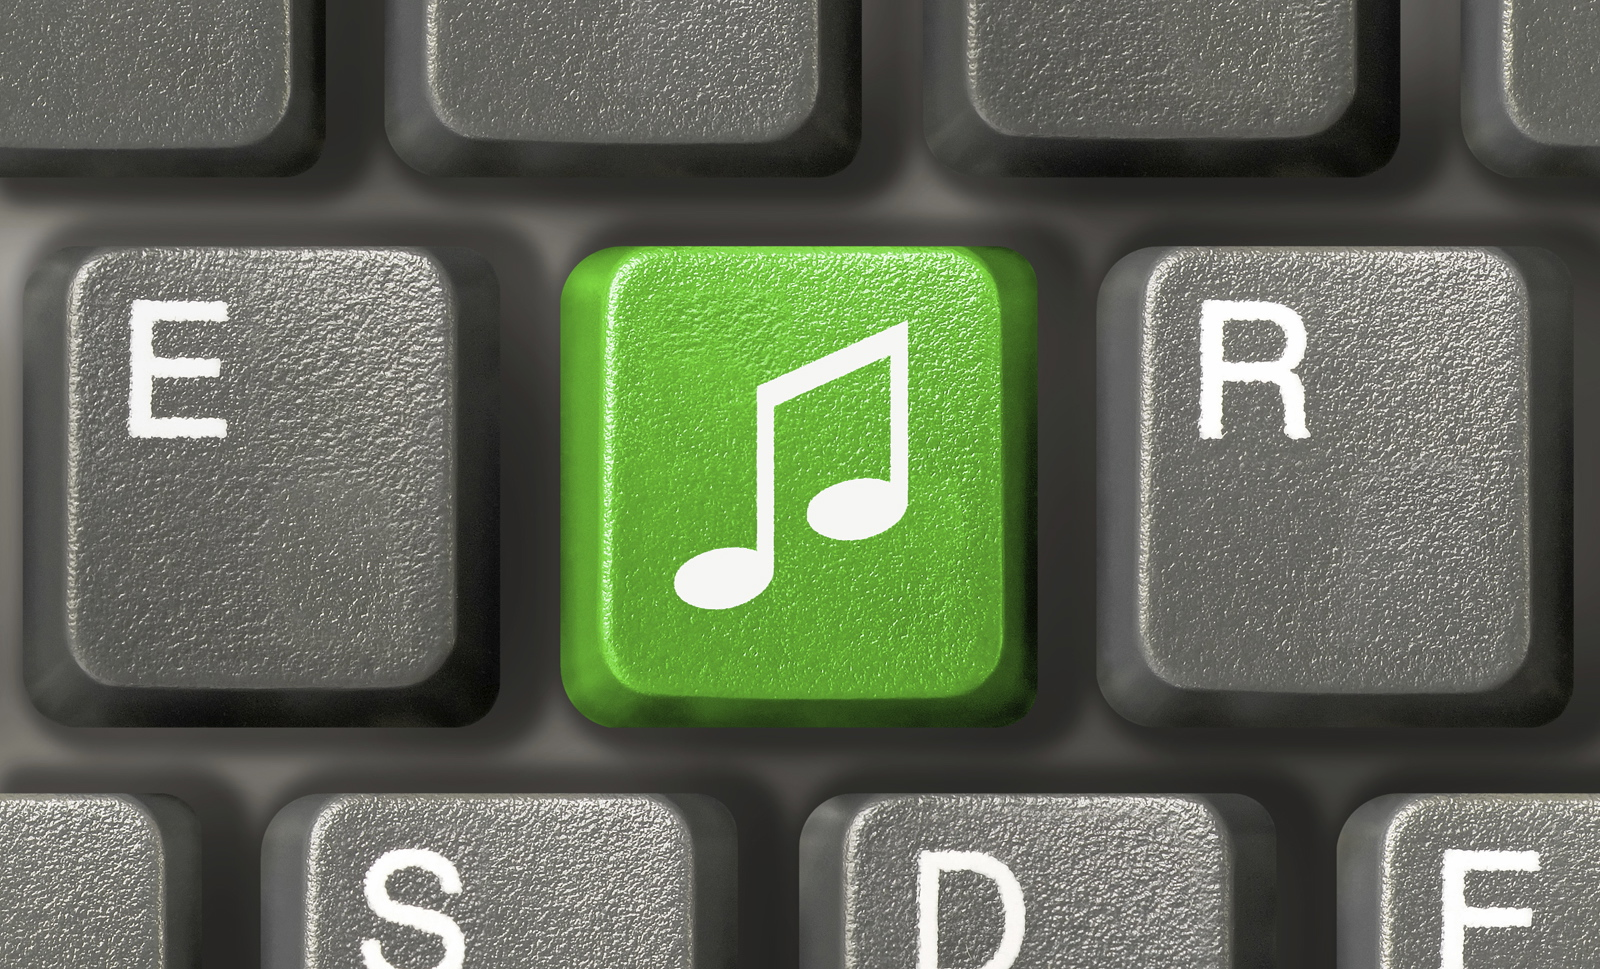 Computer keyboard (close-up) with green music key